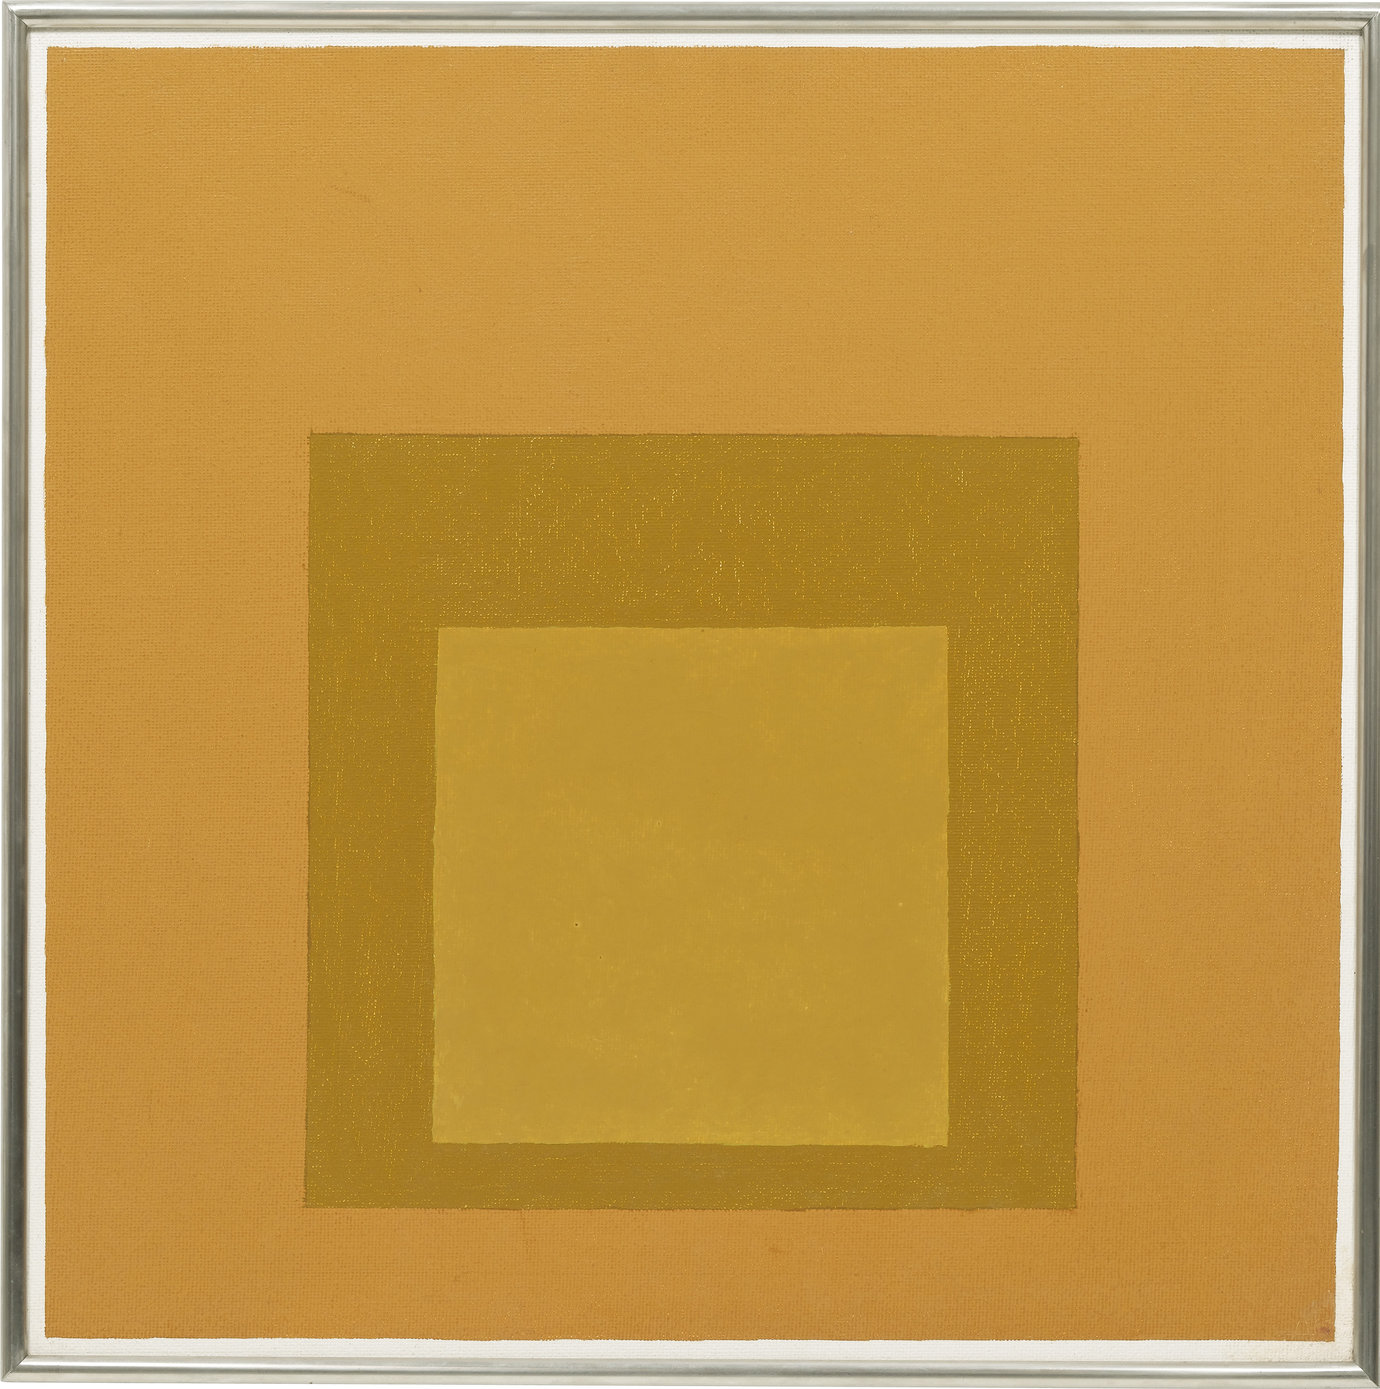 ", 1963. oil on masonite, 24"" x 24"" (61 cm x 61 cm)."